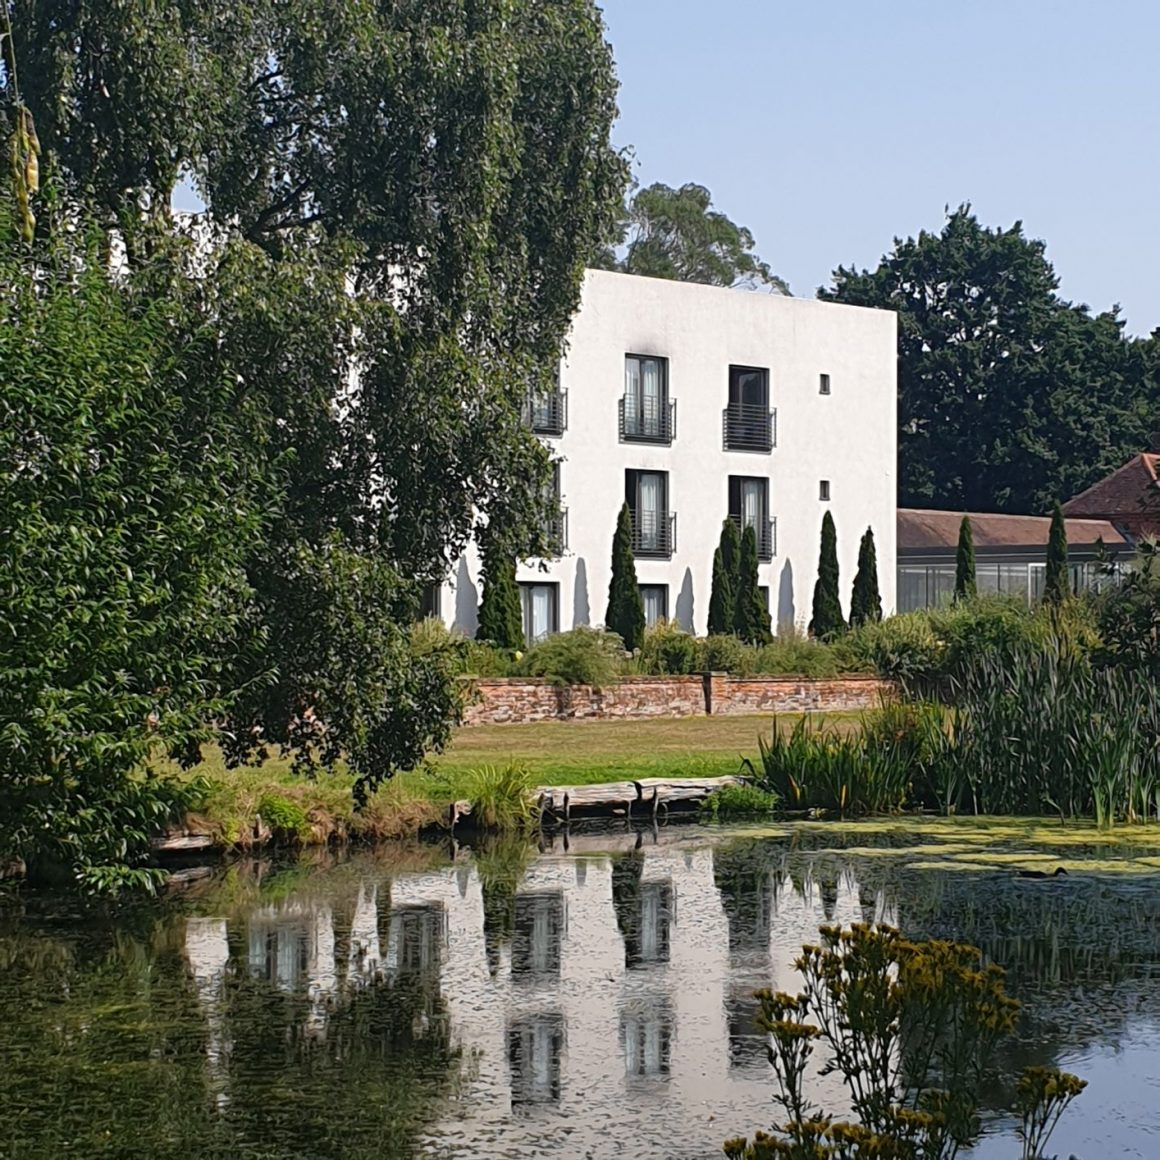 White square accommodation building at Lifehouse Spa and Hotel